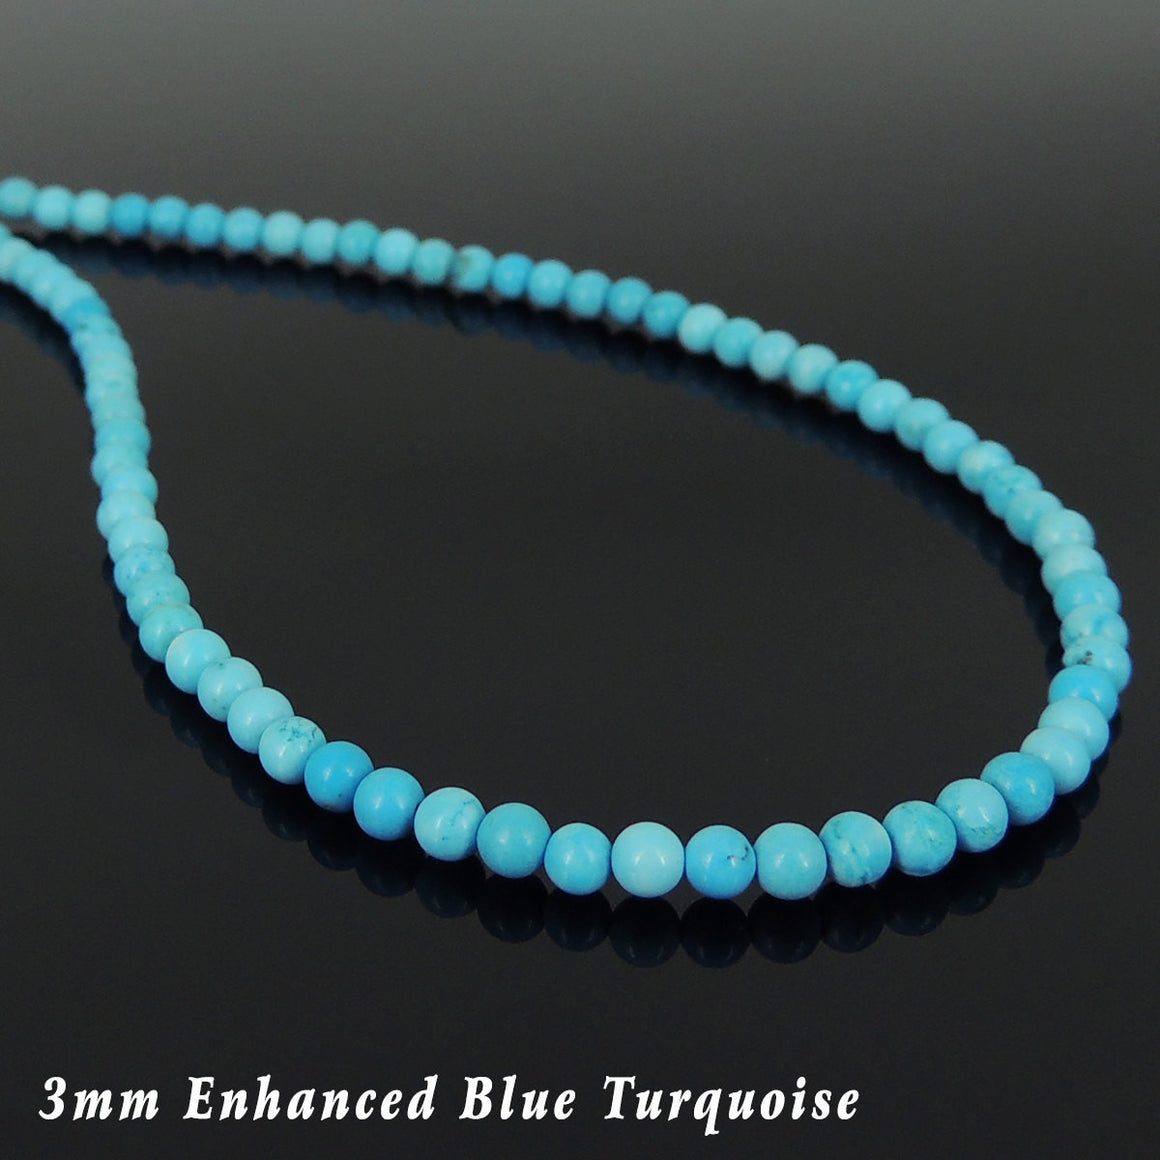 3mm Enhanced Turquoise Healing Gemstone Necklace with S925 Sterling Silver Seamless Beads & Clasp - Handmade by Gem & Silver NK143